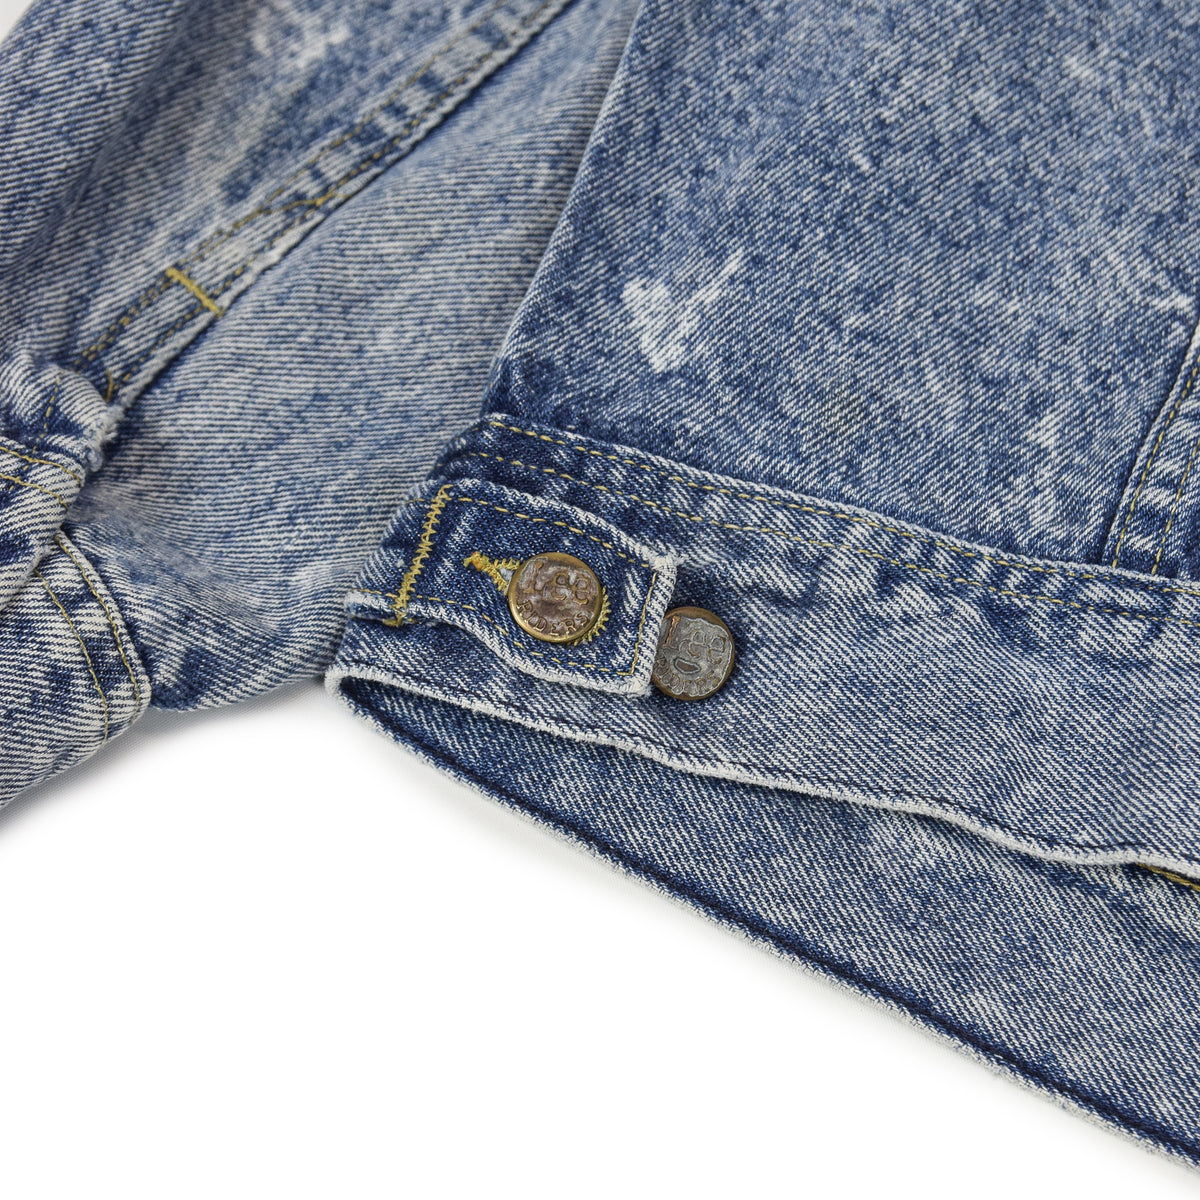 Vintage 70s Lee Riders Stonewash Blue Denim Trucker Style Jacket Made in USA M back detail